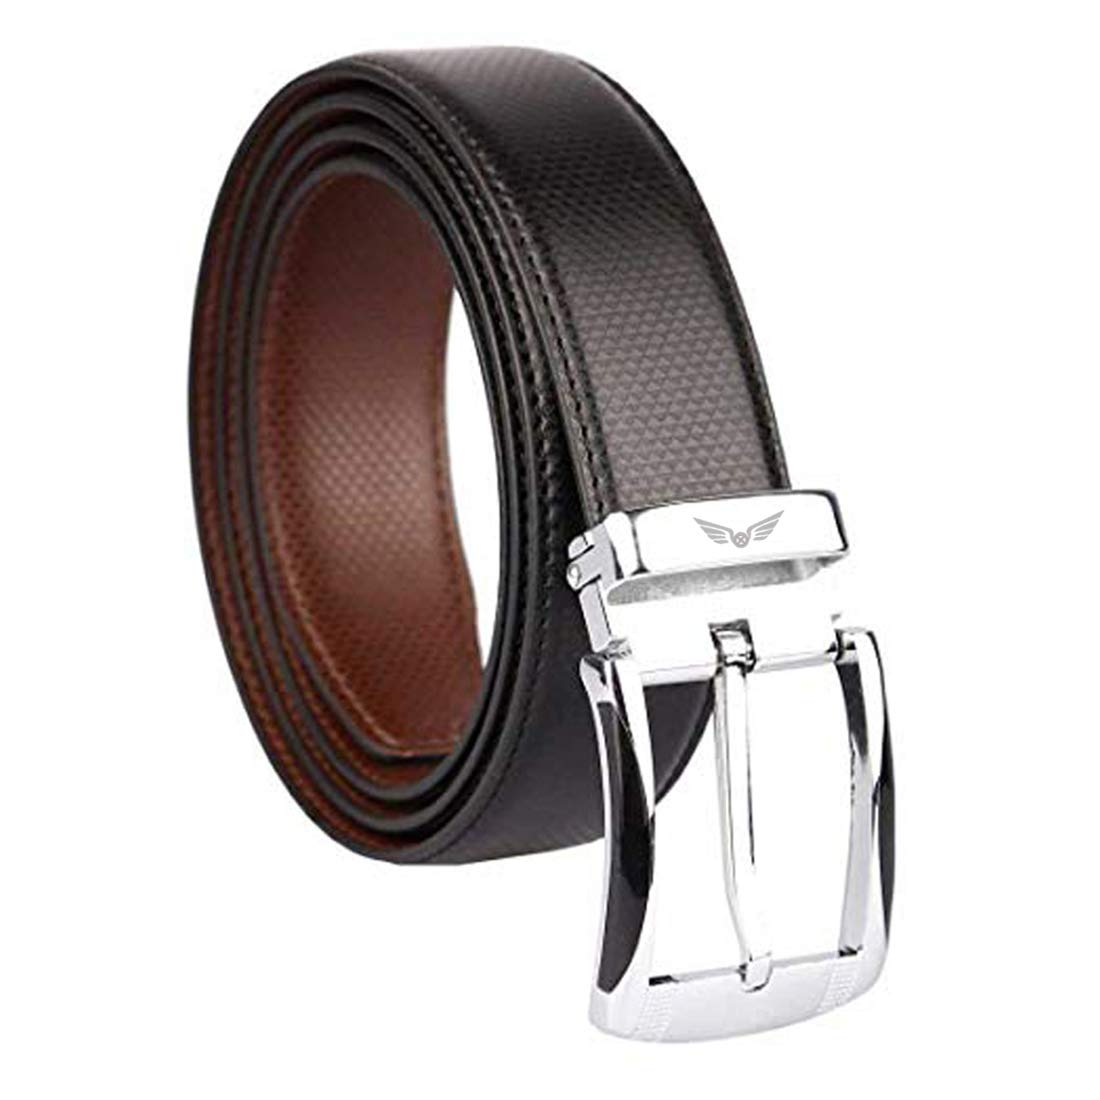 Leather Boy's Casual & Formal Reversible Belt